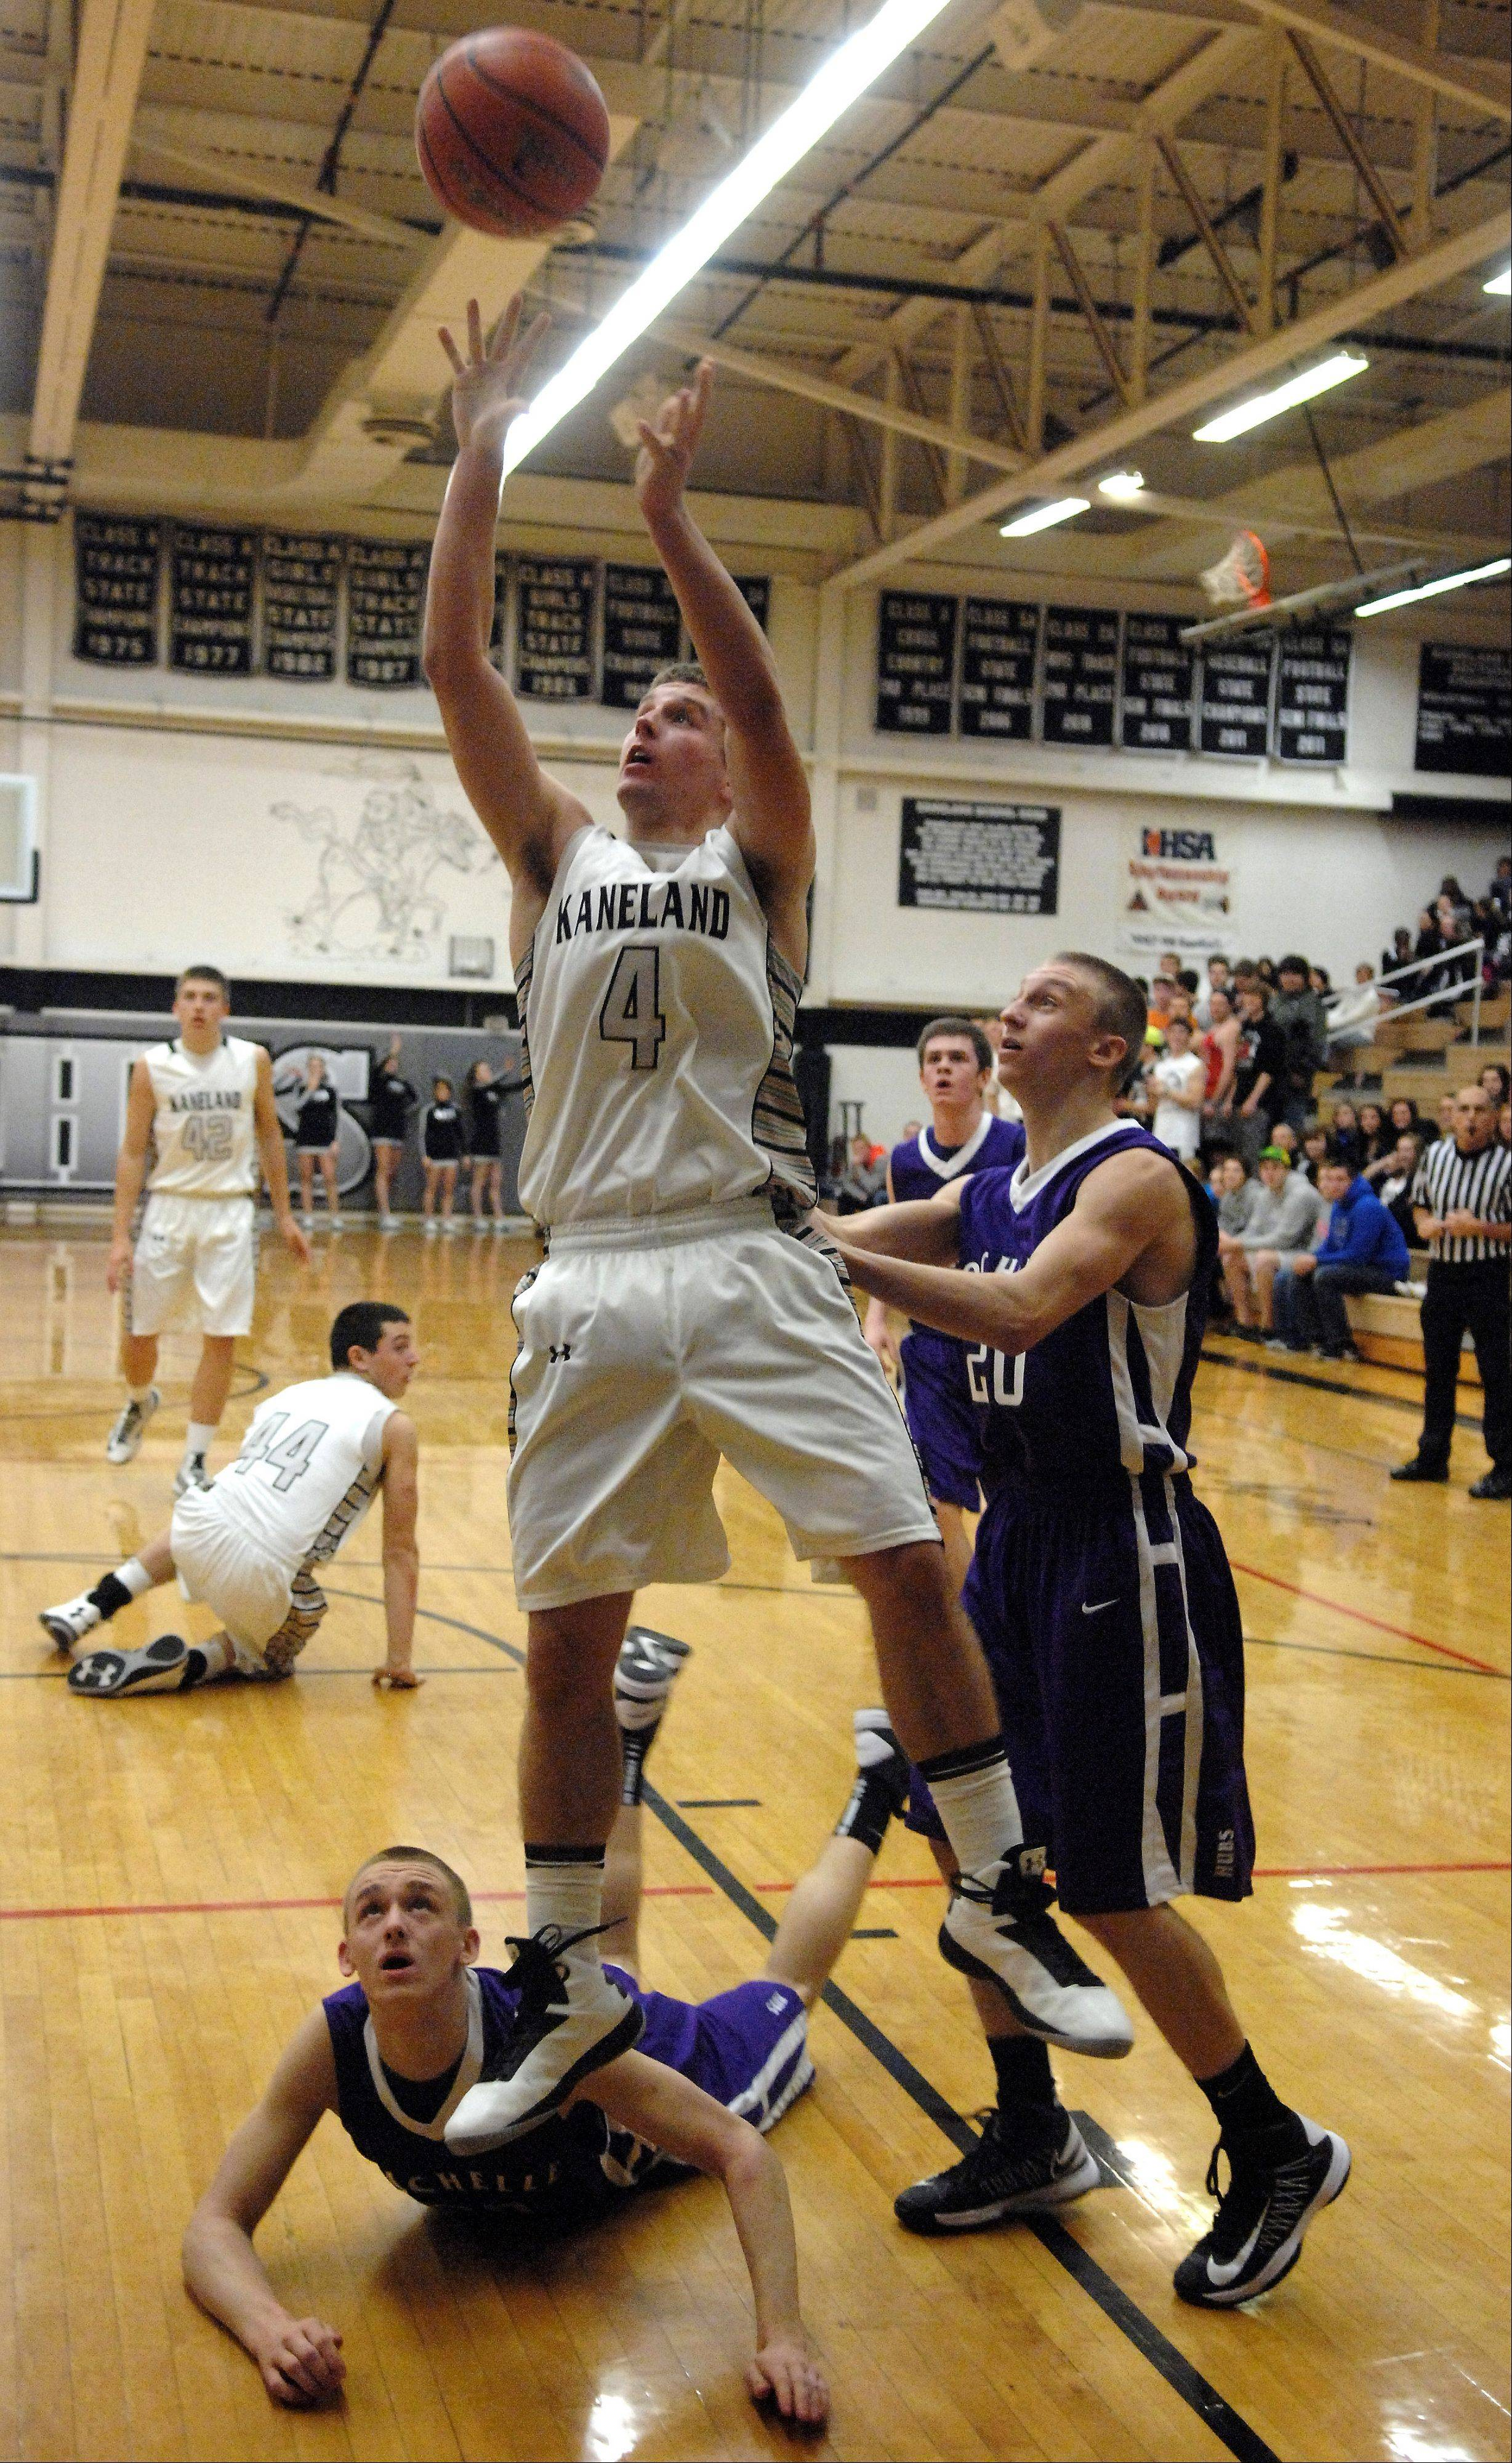 Kaneland's Drew David puts up a shot after a scramble on the floor.